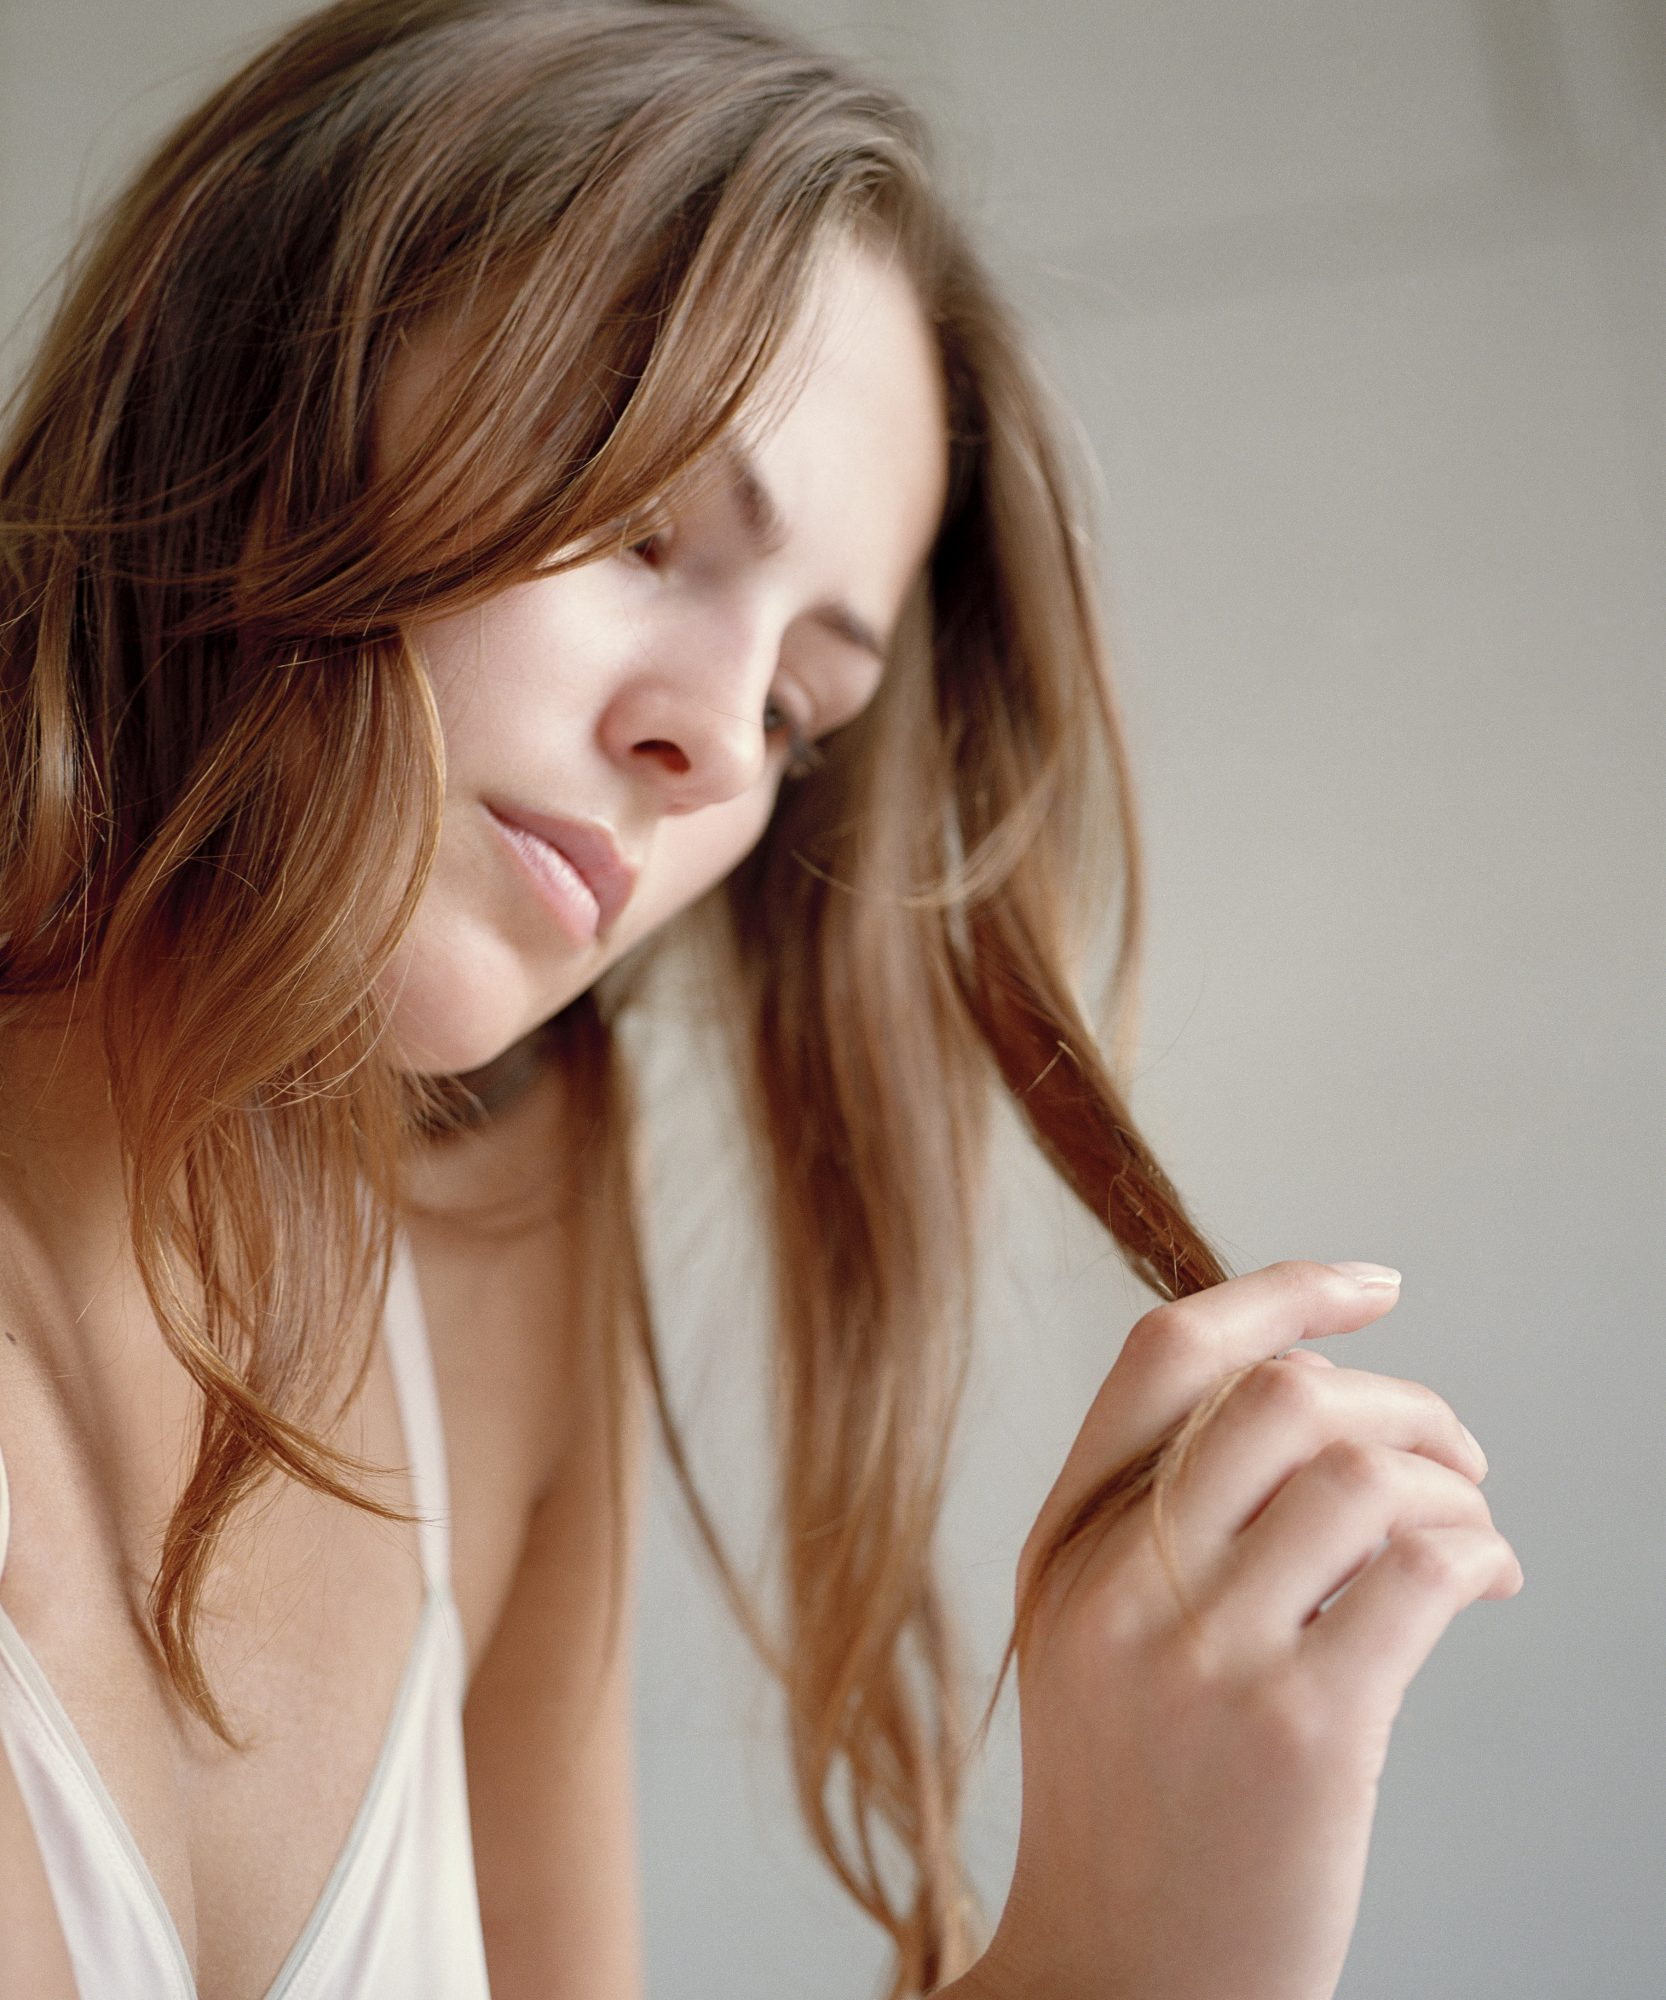 Split Ends Begone! Here's What to Do to Get Rid of Them